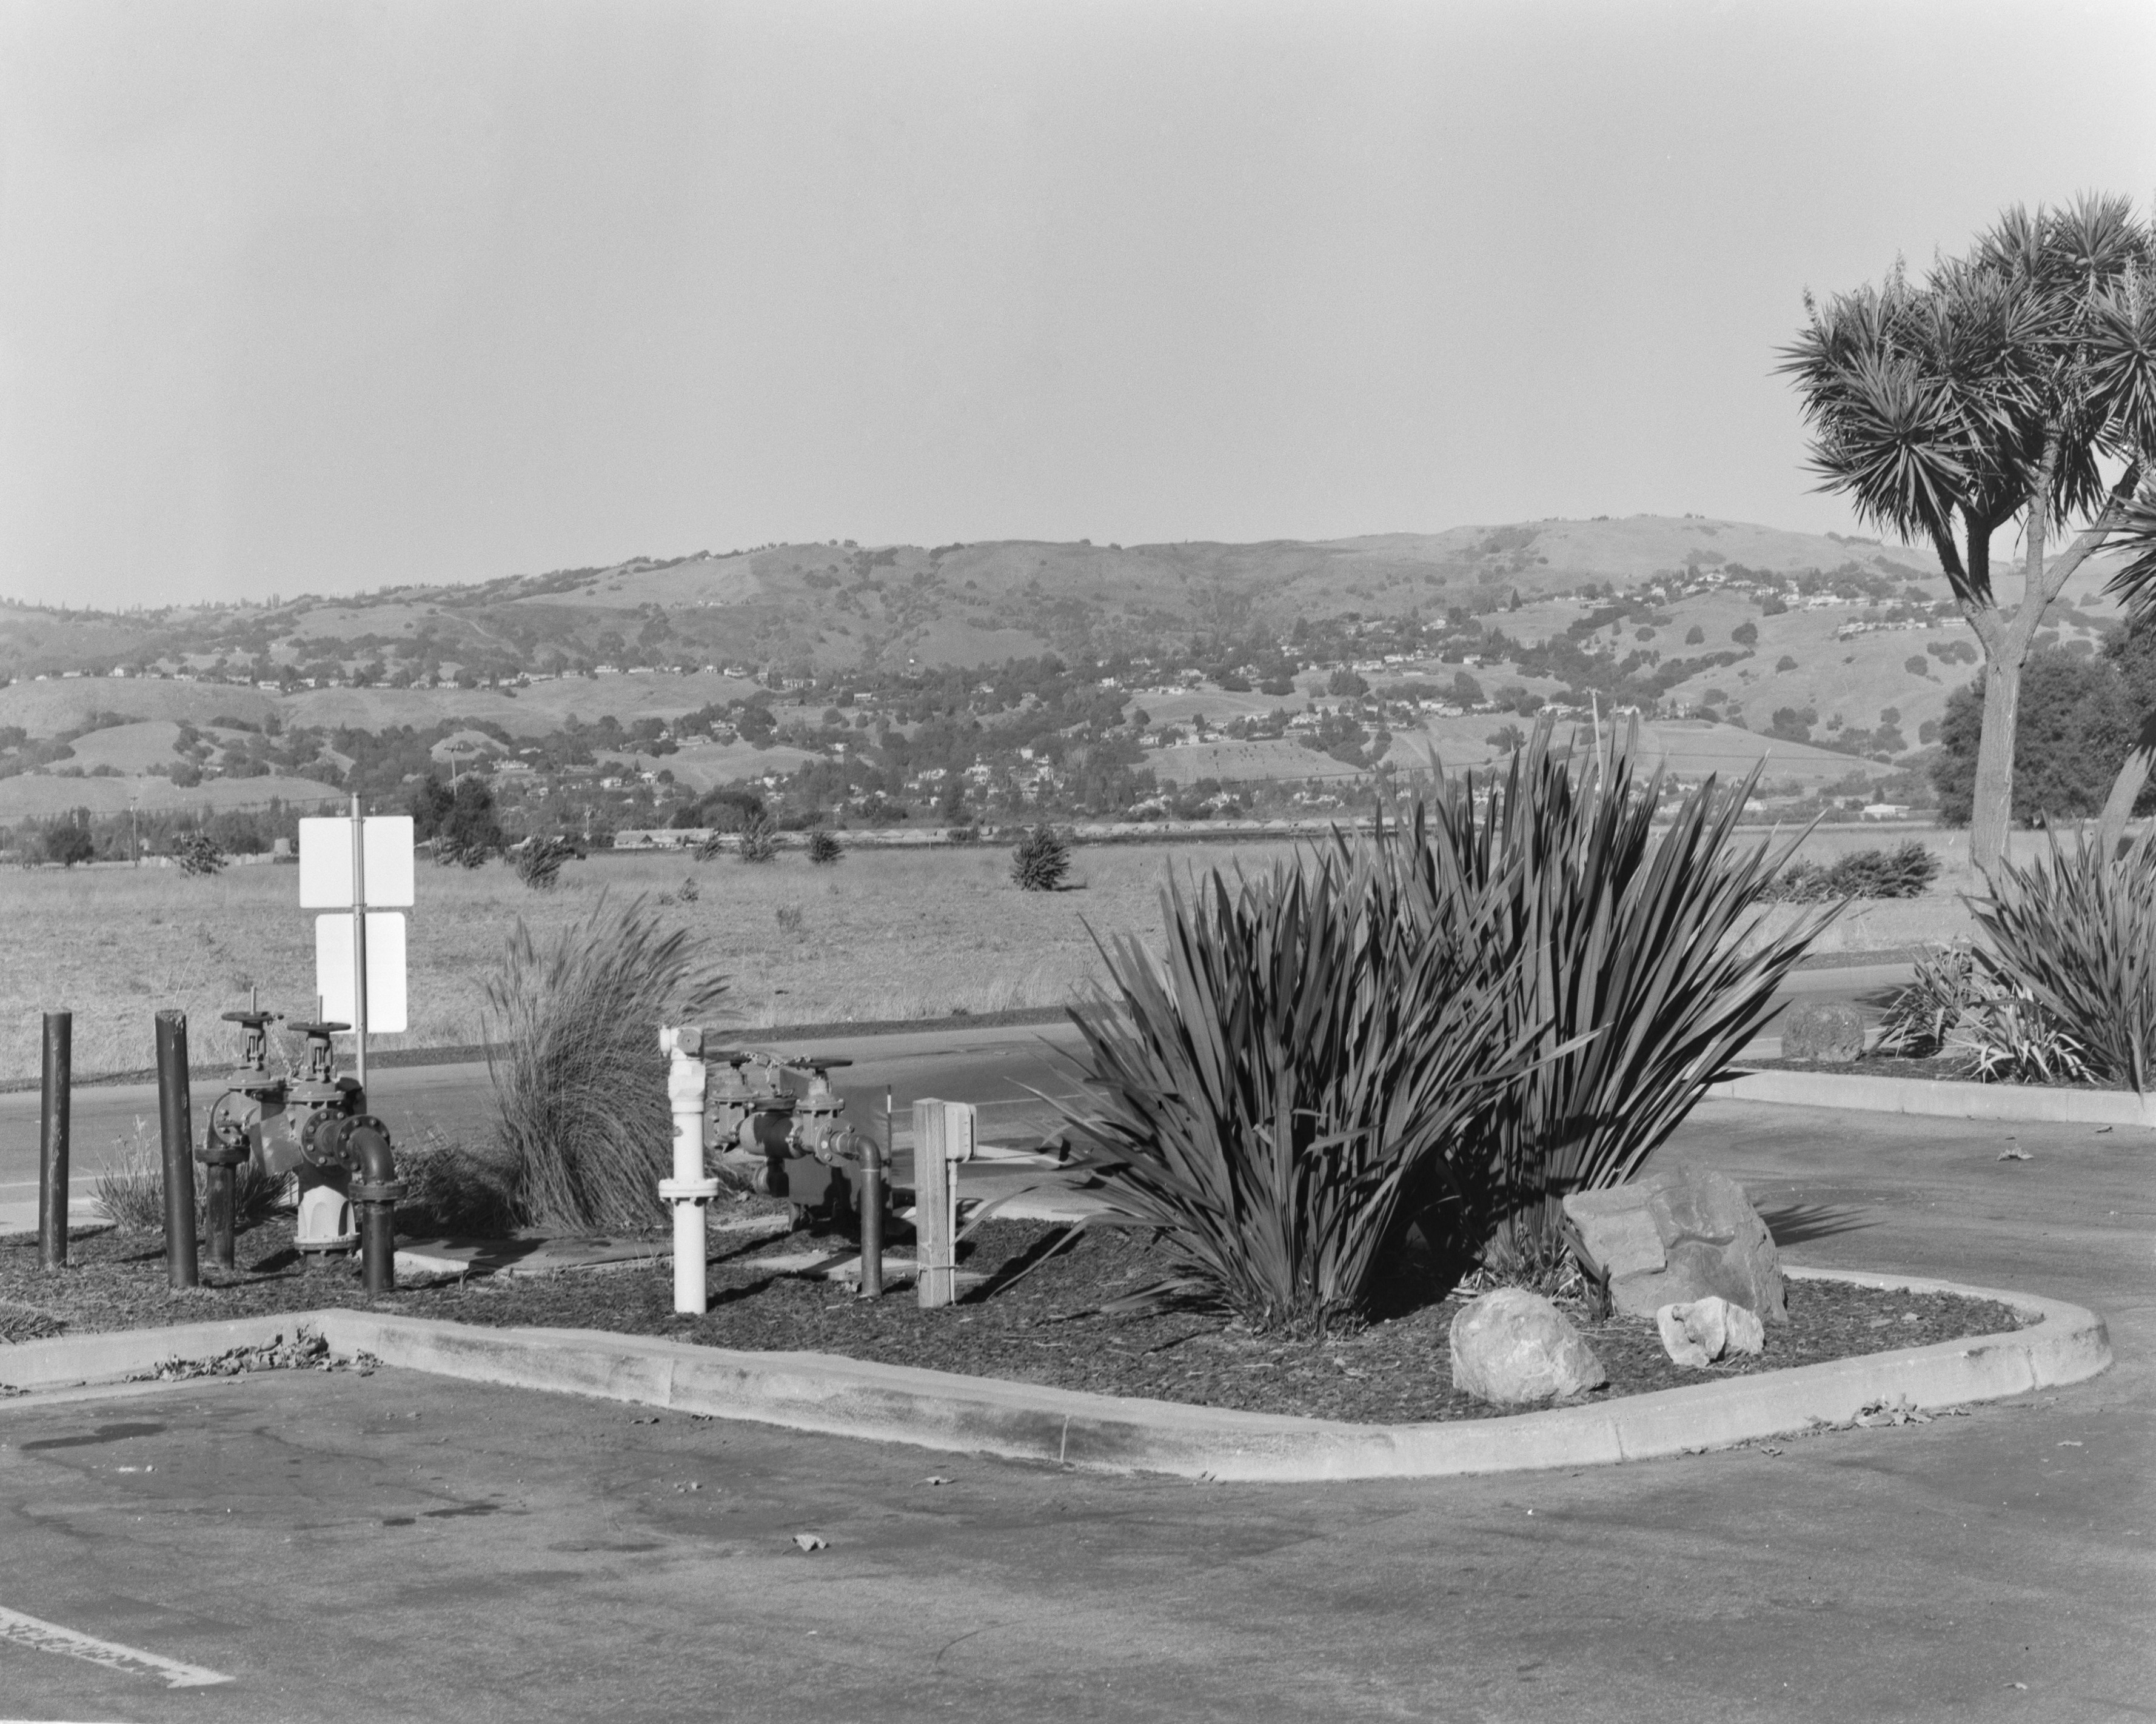 A black-and-white photograph of the planter curb of a parking lot. It contains several plants, decorative rocks, pipes, valves, and a road sign.The background is a dry field of grass and a landscape of rolling hills, dotted with houses and trees.